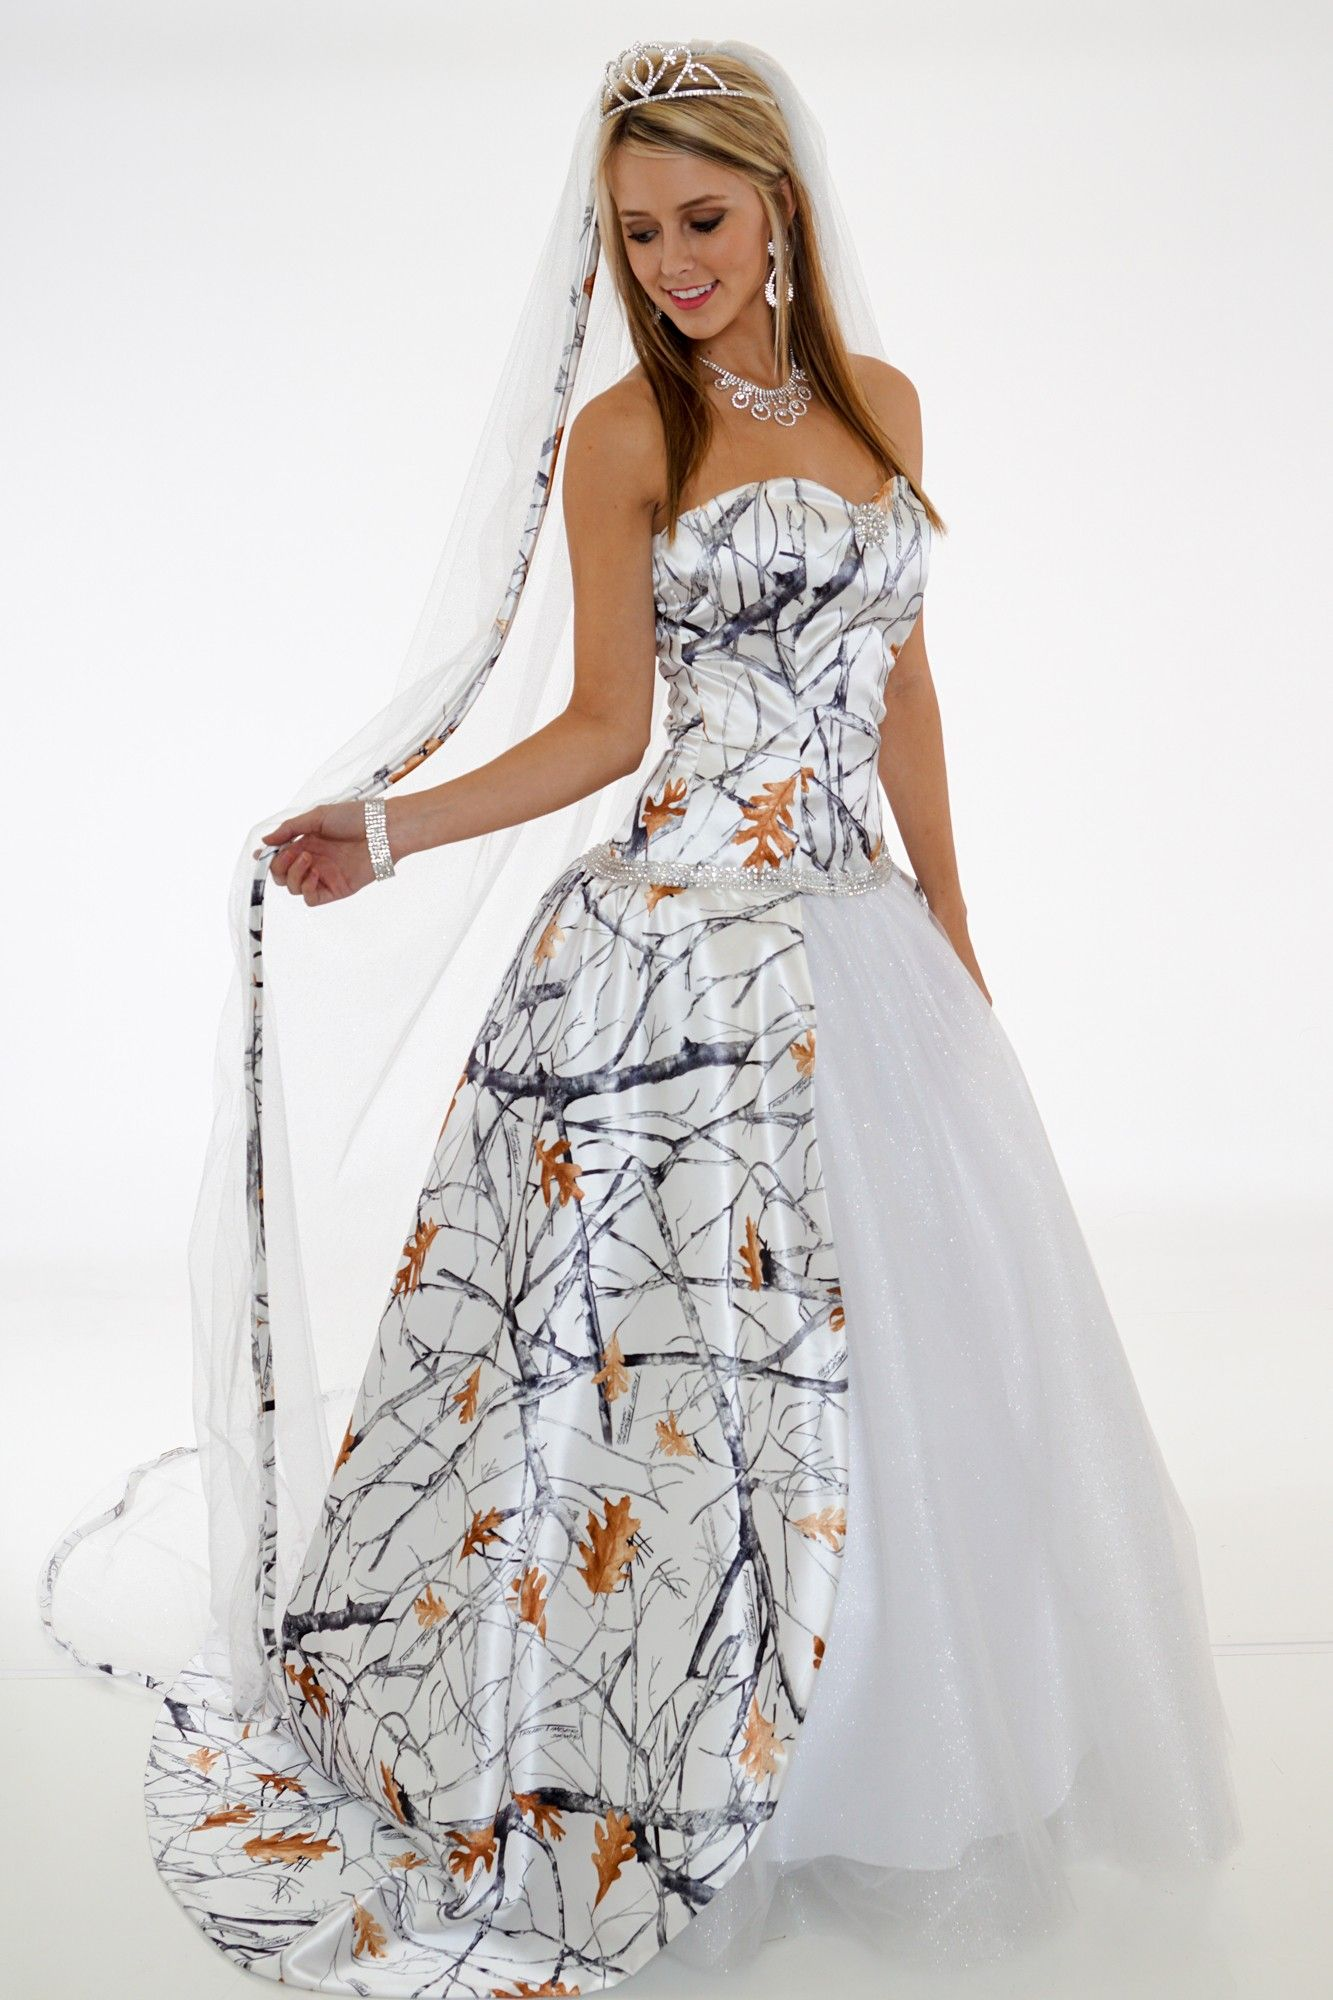 20 Camo Wedding Dresses Ideas You Must Love